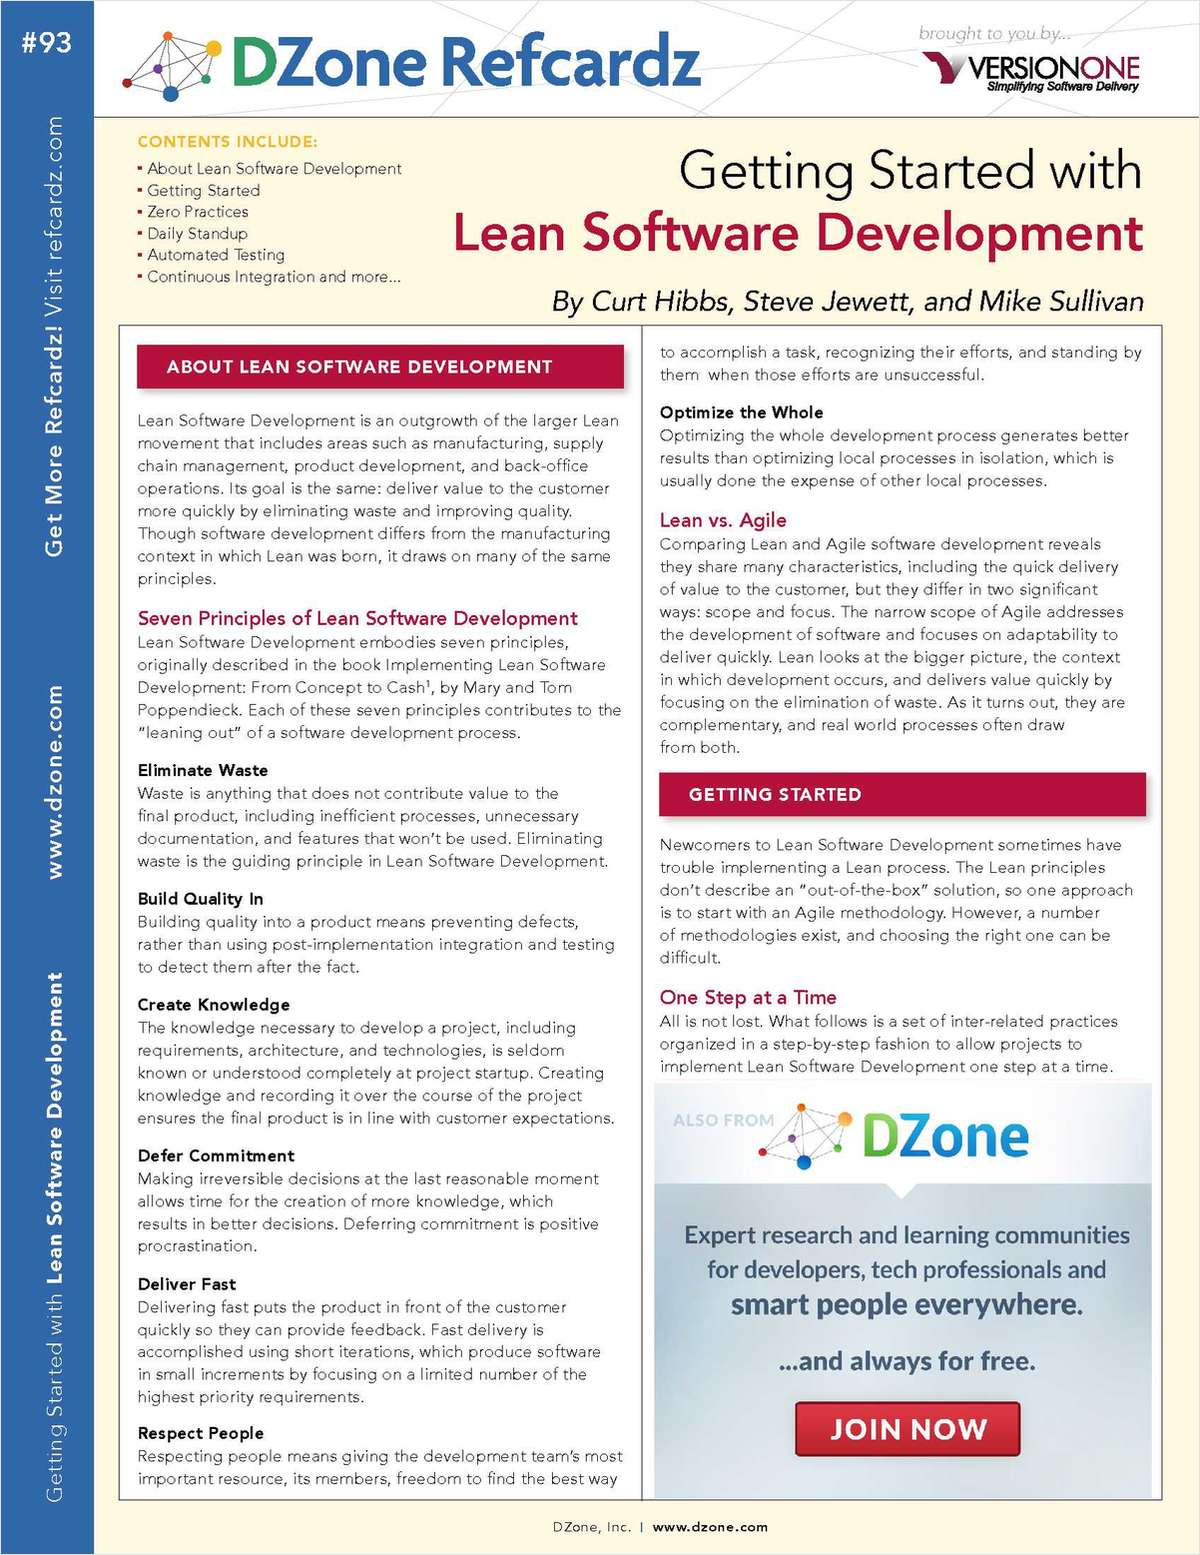 Getting Started with Lean Software Development